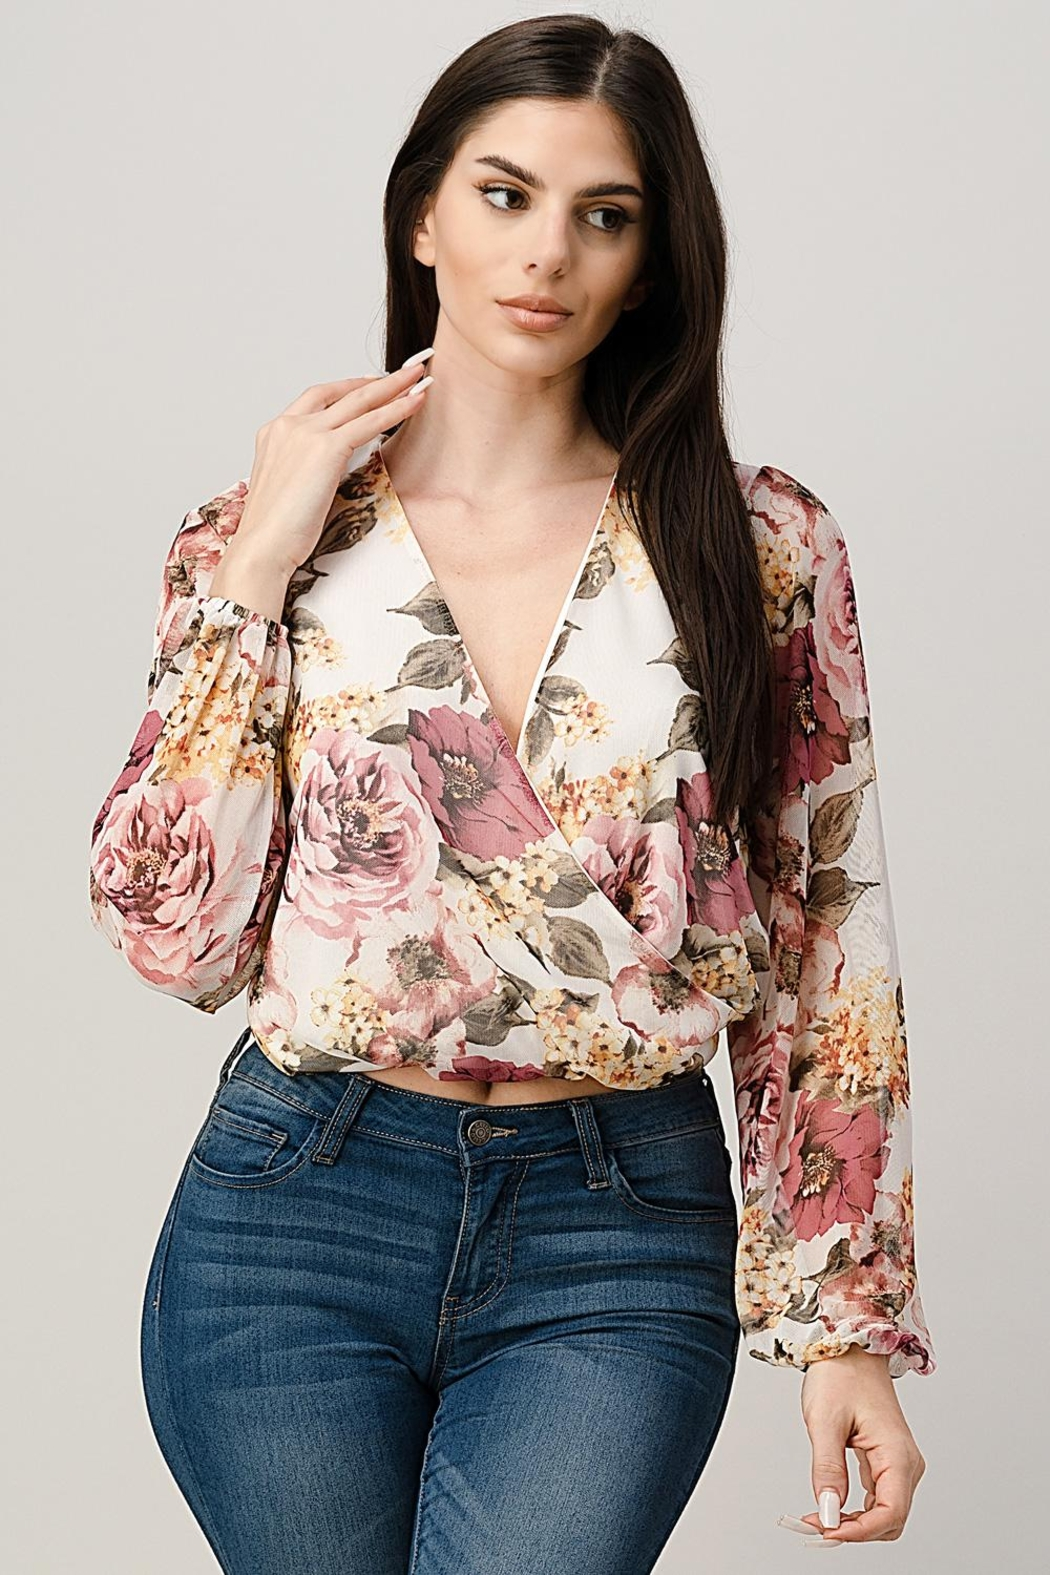 Miley and Molly Mesh Floral Surplice Blouse Top - Main Image